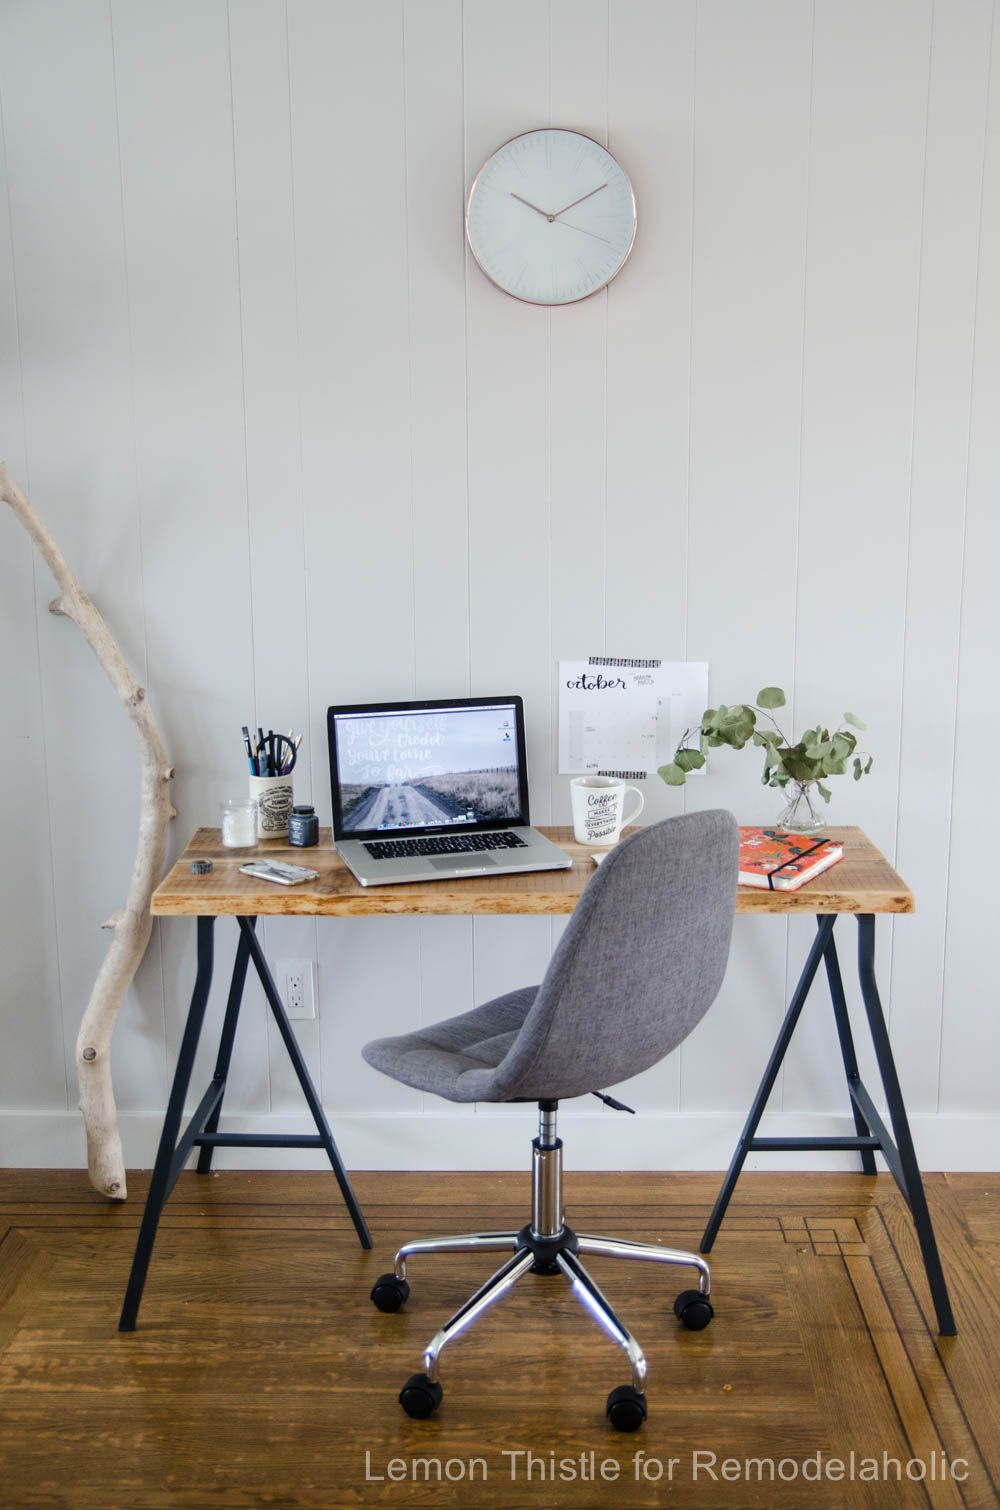 Diy Live Edge Desk With Trestle Legs I Can T Believe It S An Ikea Hack It Looks So Great Live Edge Desk Home Office Furniture Ikea Hack